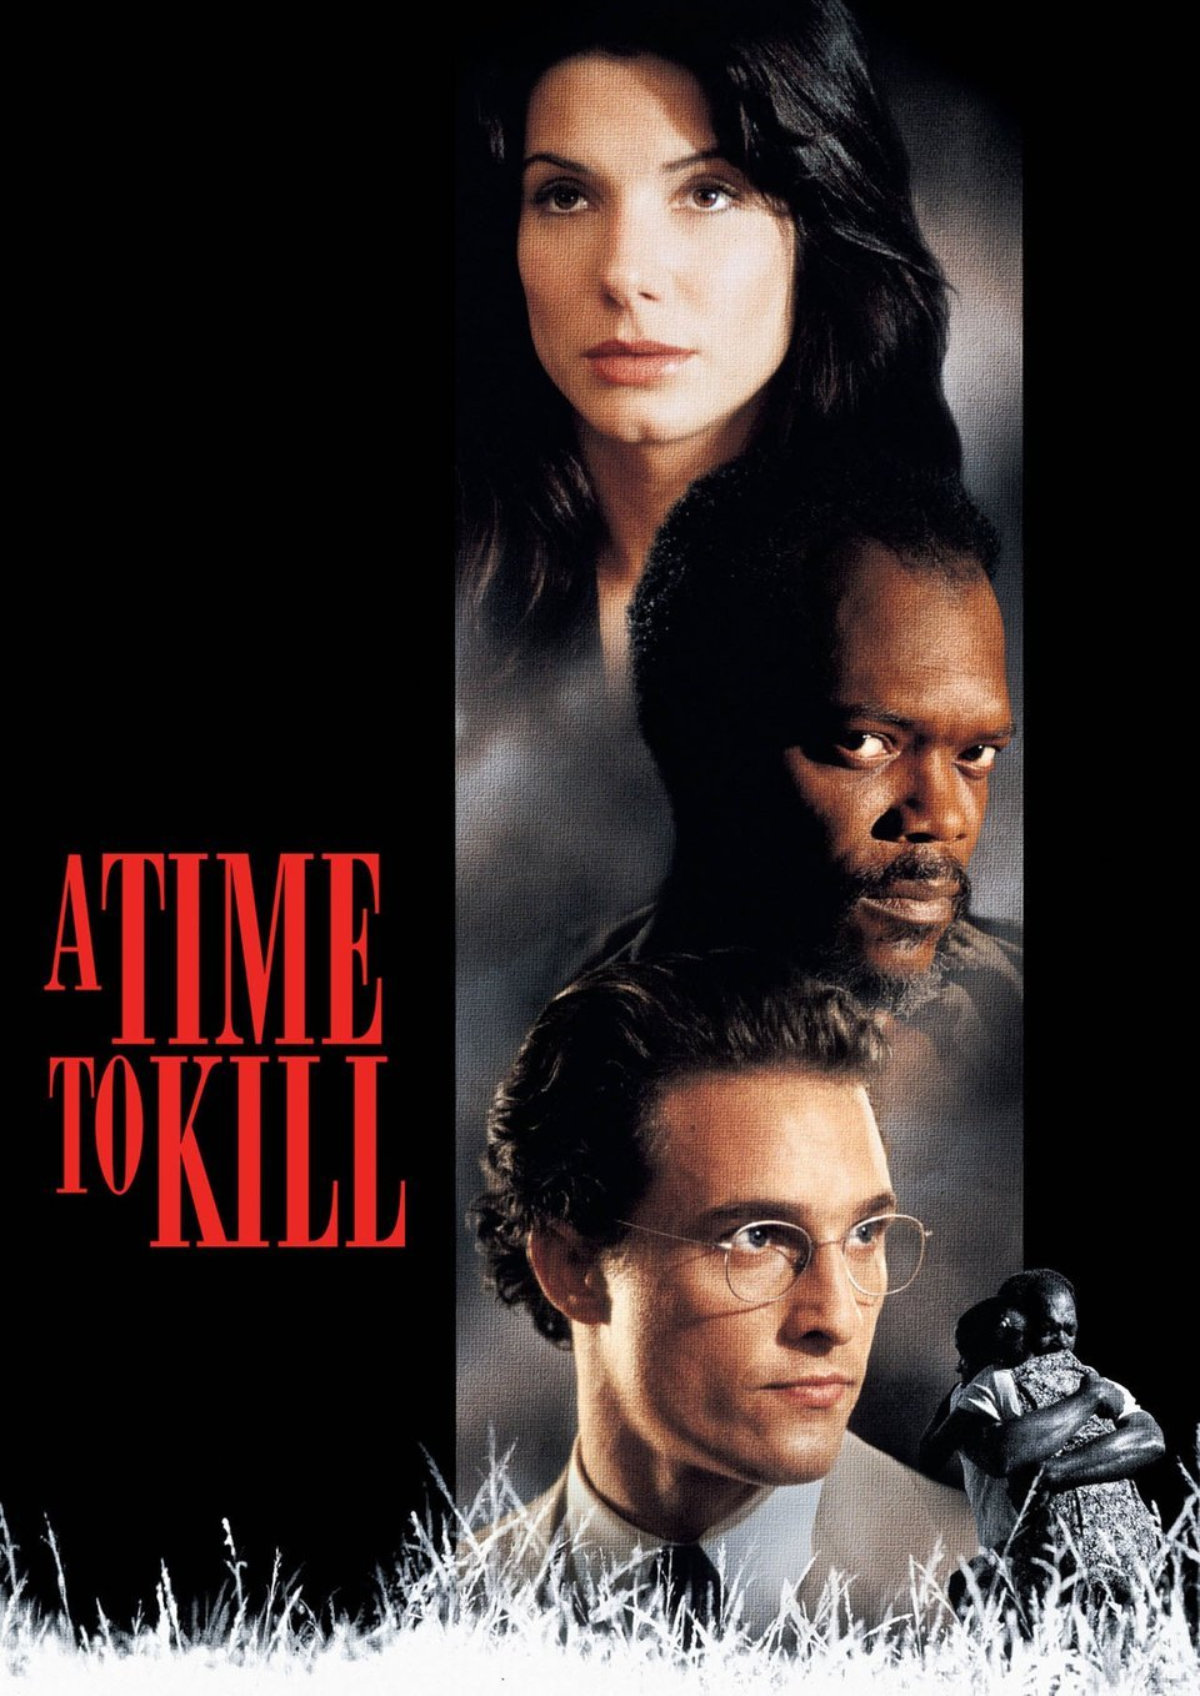 a time to kill movie and book comparison A time to kill a young lawyer defends a black man accused of murdering two men who raped his 10-year-old daughter, sparking a rebirth of the kkk director: joel schumacher country: usa movie: a time to kill production co: duration: 149 min.